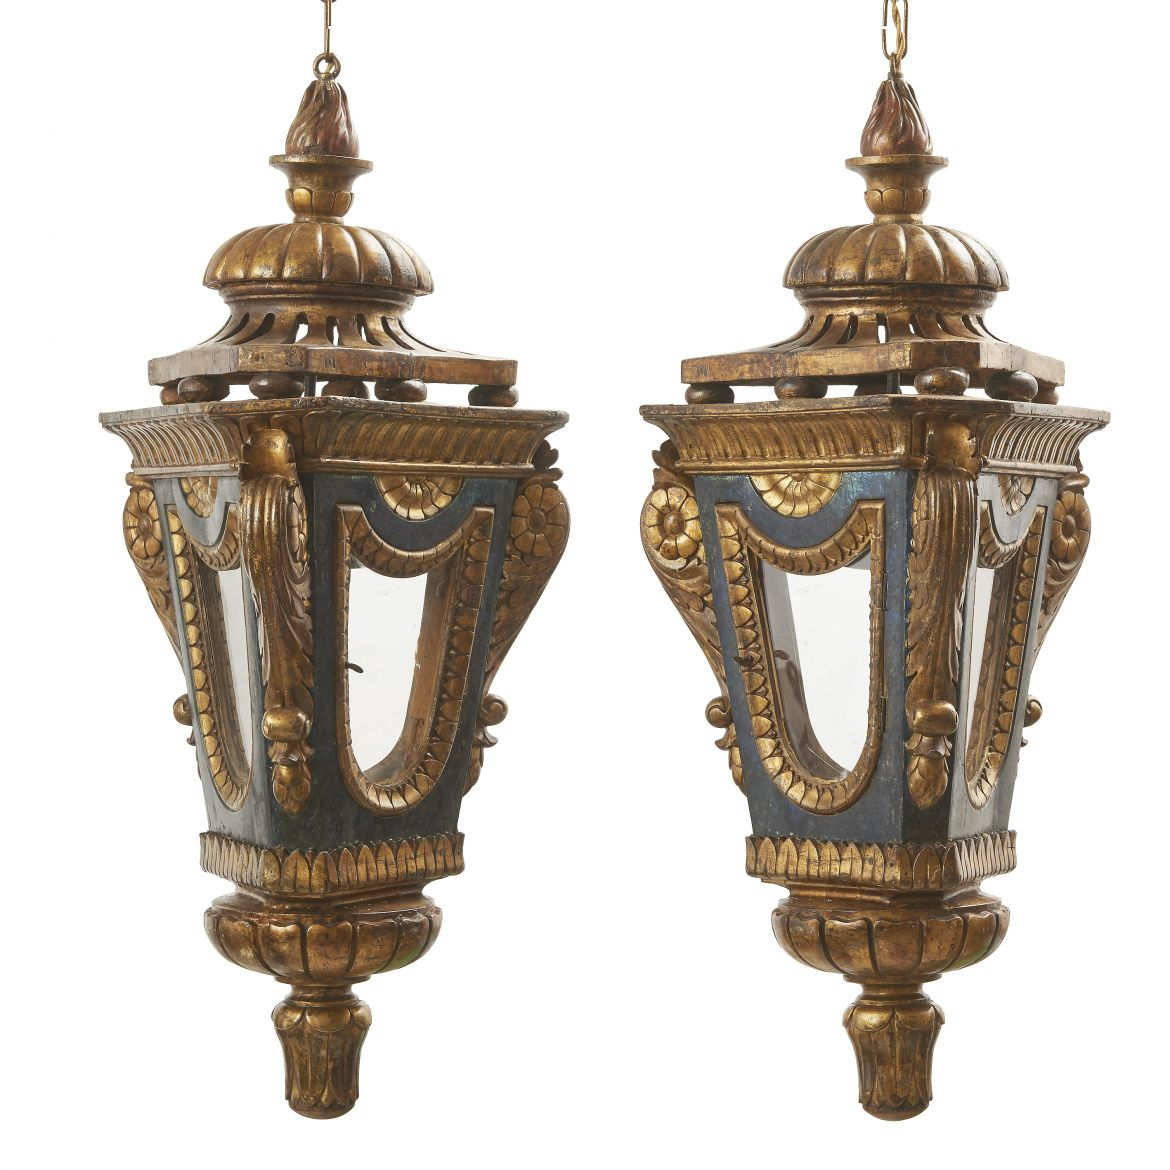 Italian Neoclassical Gilt Lanterns